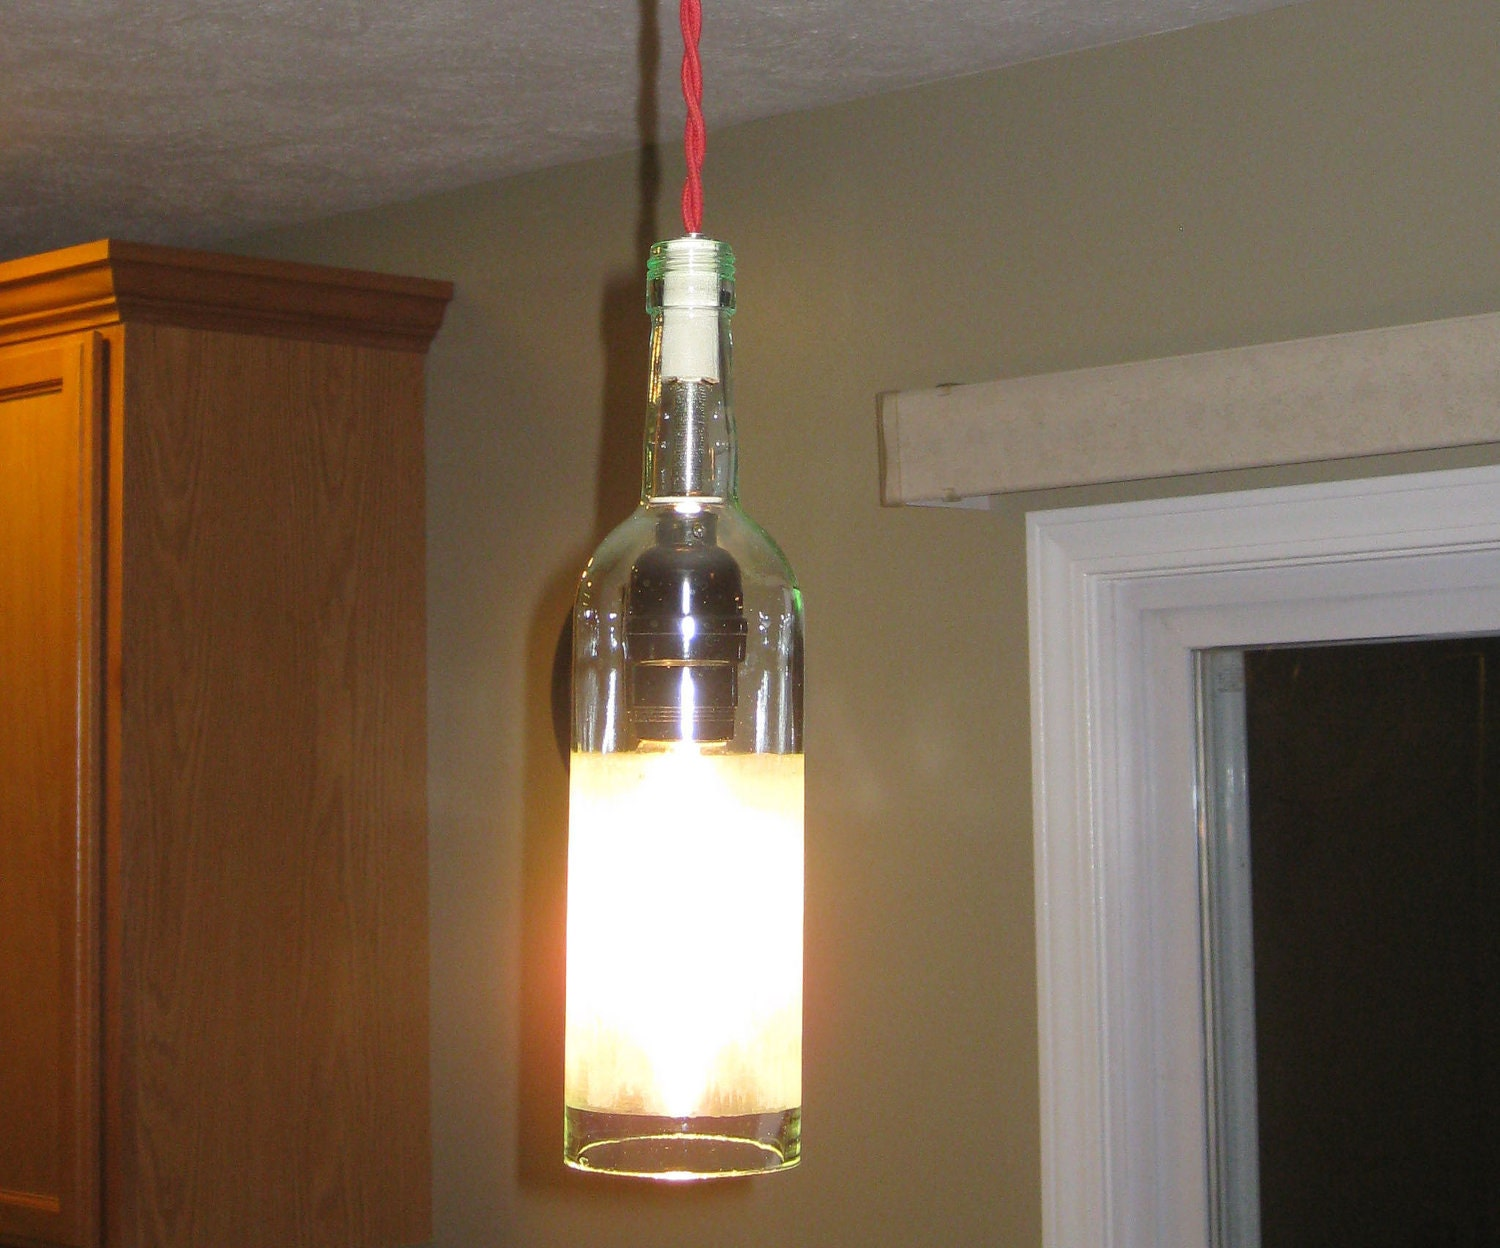 Wine bottle pendant light by miltondouglaslampco on etsy - Wine bottle pendant light ...